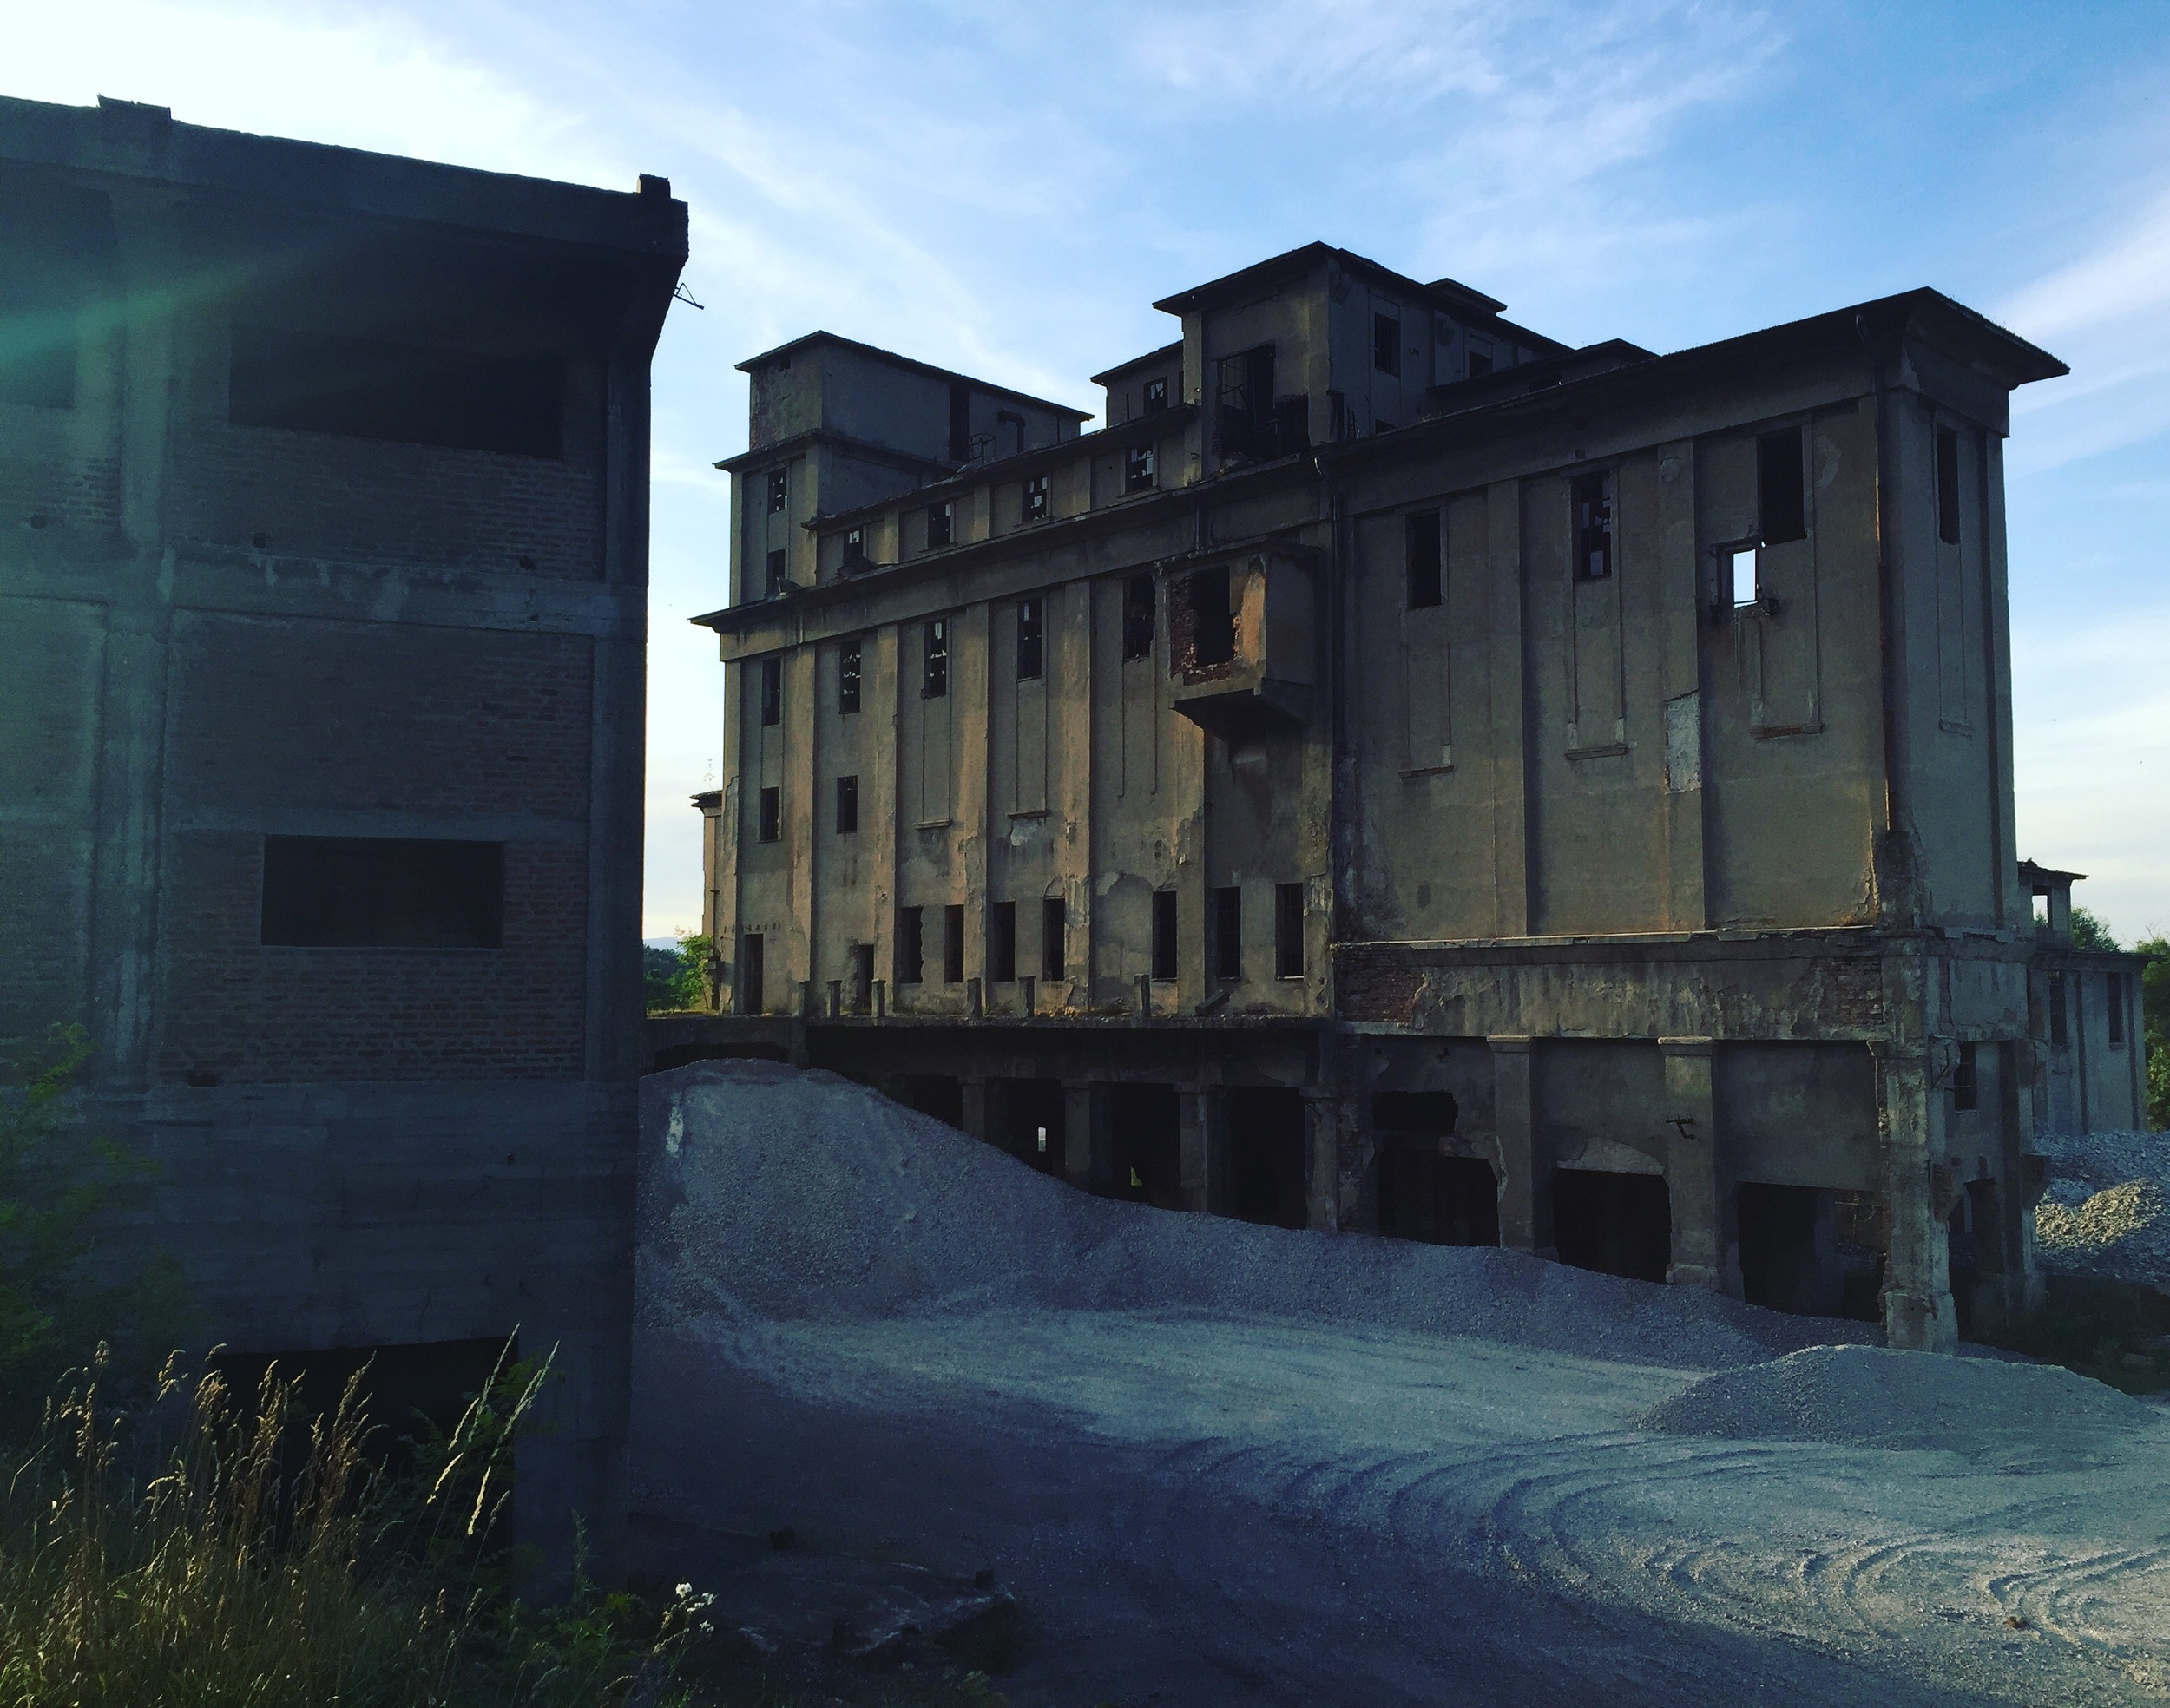 Abandoned buildings along the way.